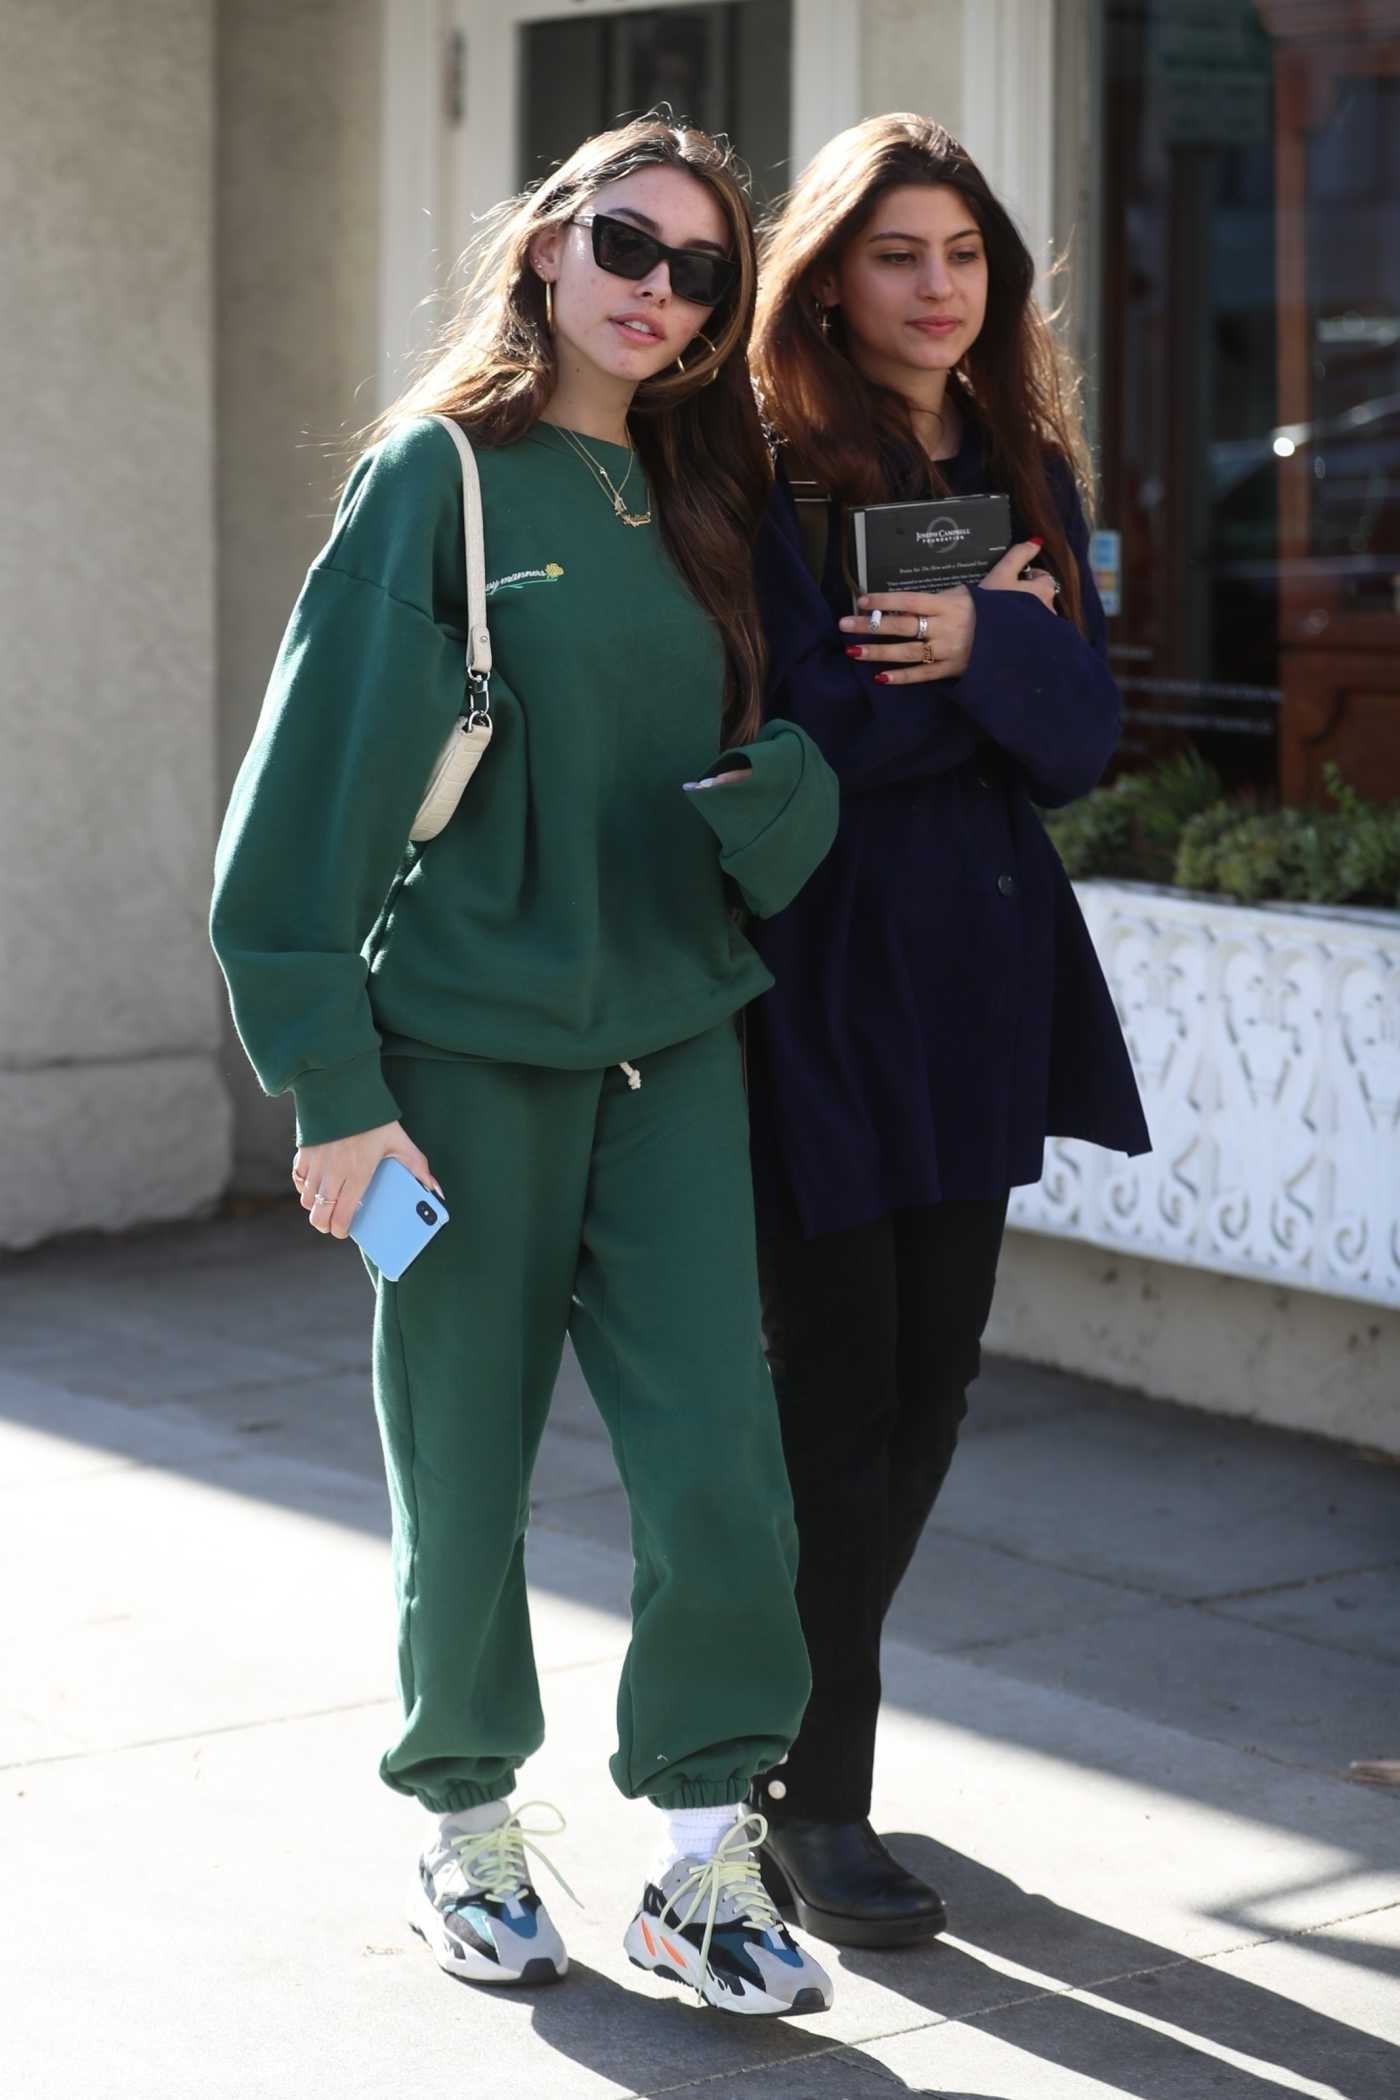 Madison Beer in a Green Sweatsuit Leaves Lunch with Friends at Croft Alley in Beverly Hills 03/02/2020